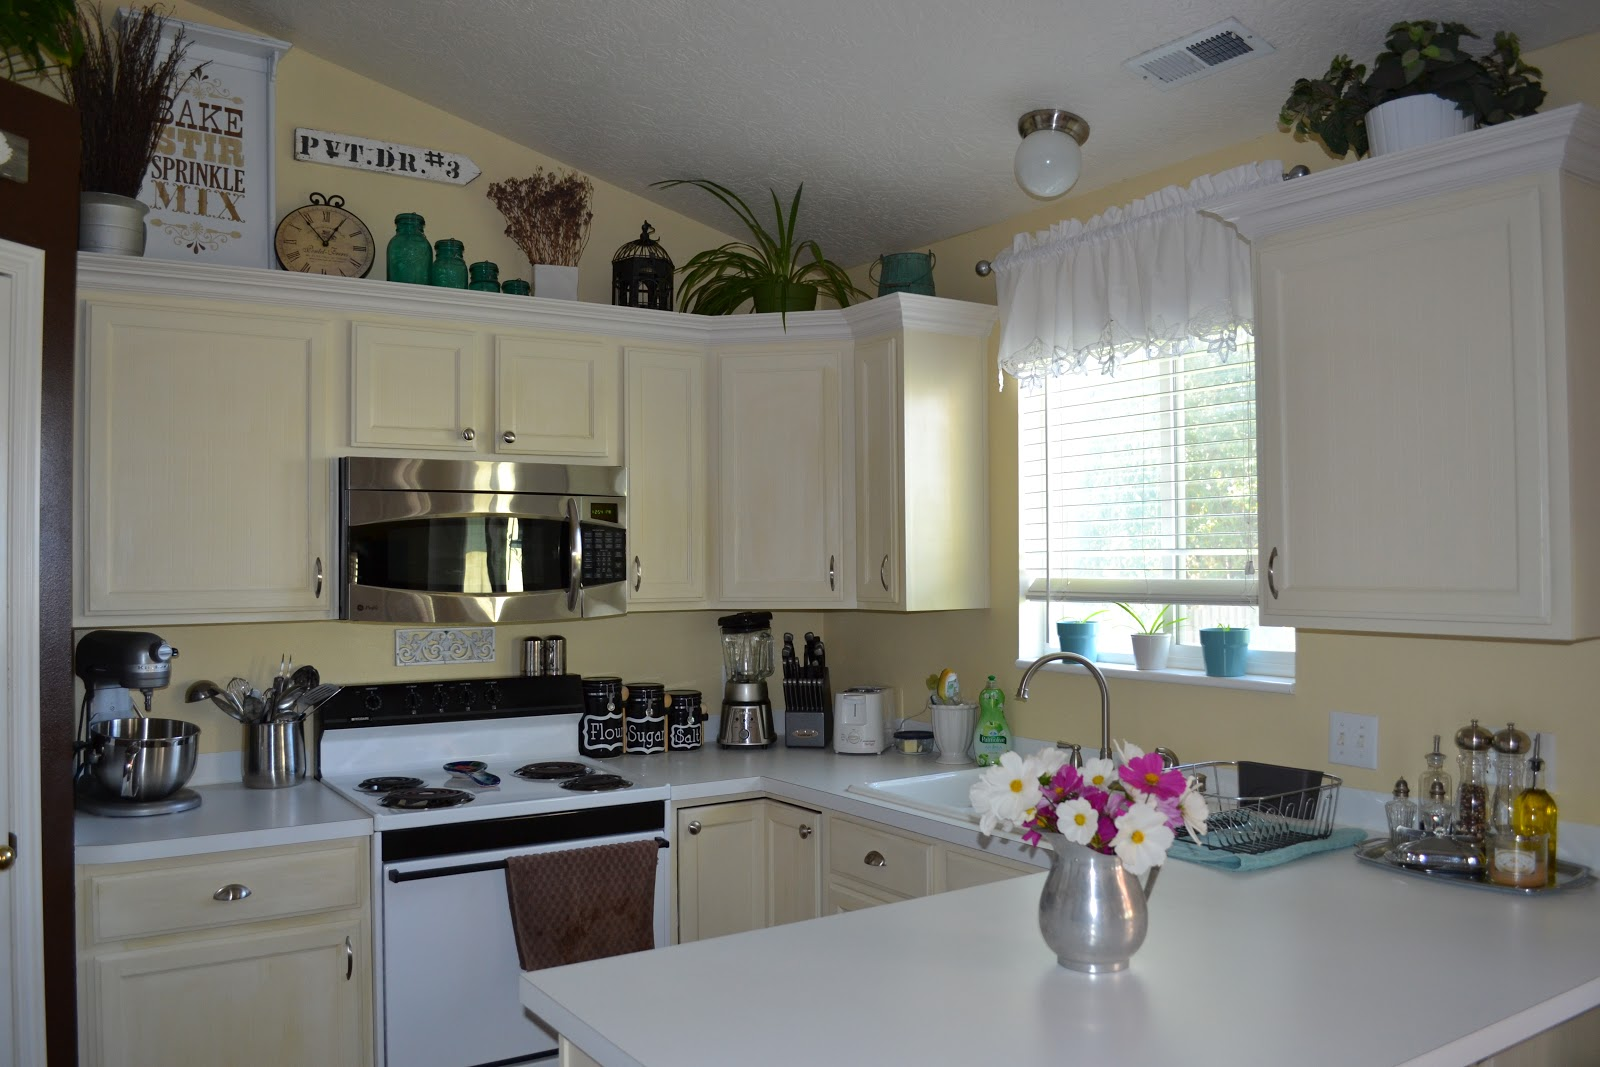 Ideas For Decorating Above Kitchen Cabinets | Cabinets Bedroom Space on rustic kitchen decorating ideas, white shaker kitchen cabinets design ideas, space over cabinets kitchen, space above shower ideas, cabinet above refrigerator ideas, space above stove ideas, above cabinet storage ideas, contemporary modern kitchen ideas, space above fridge ideas, space above refrigerator, kitchen peninsula ideas, kitchen lighting ideas, space above oven ideas, space organizer for kitchen cabinets, space above kitchen sink ideas,